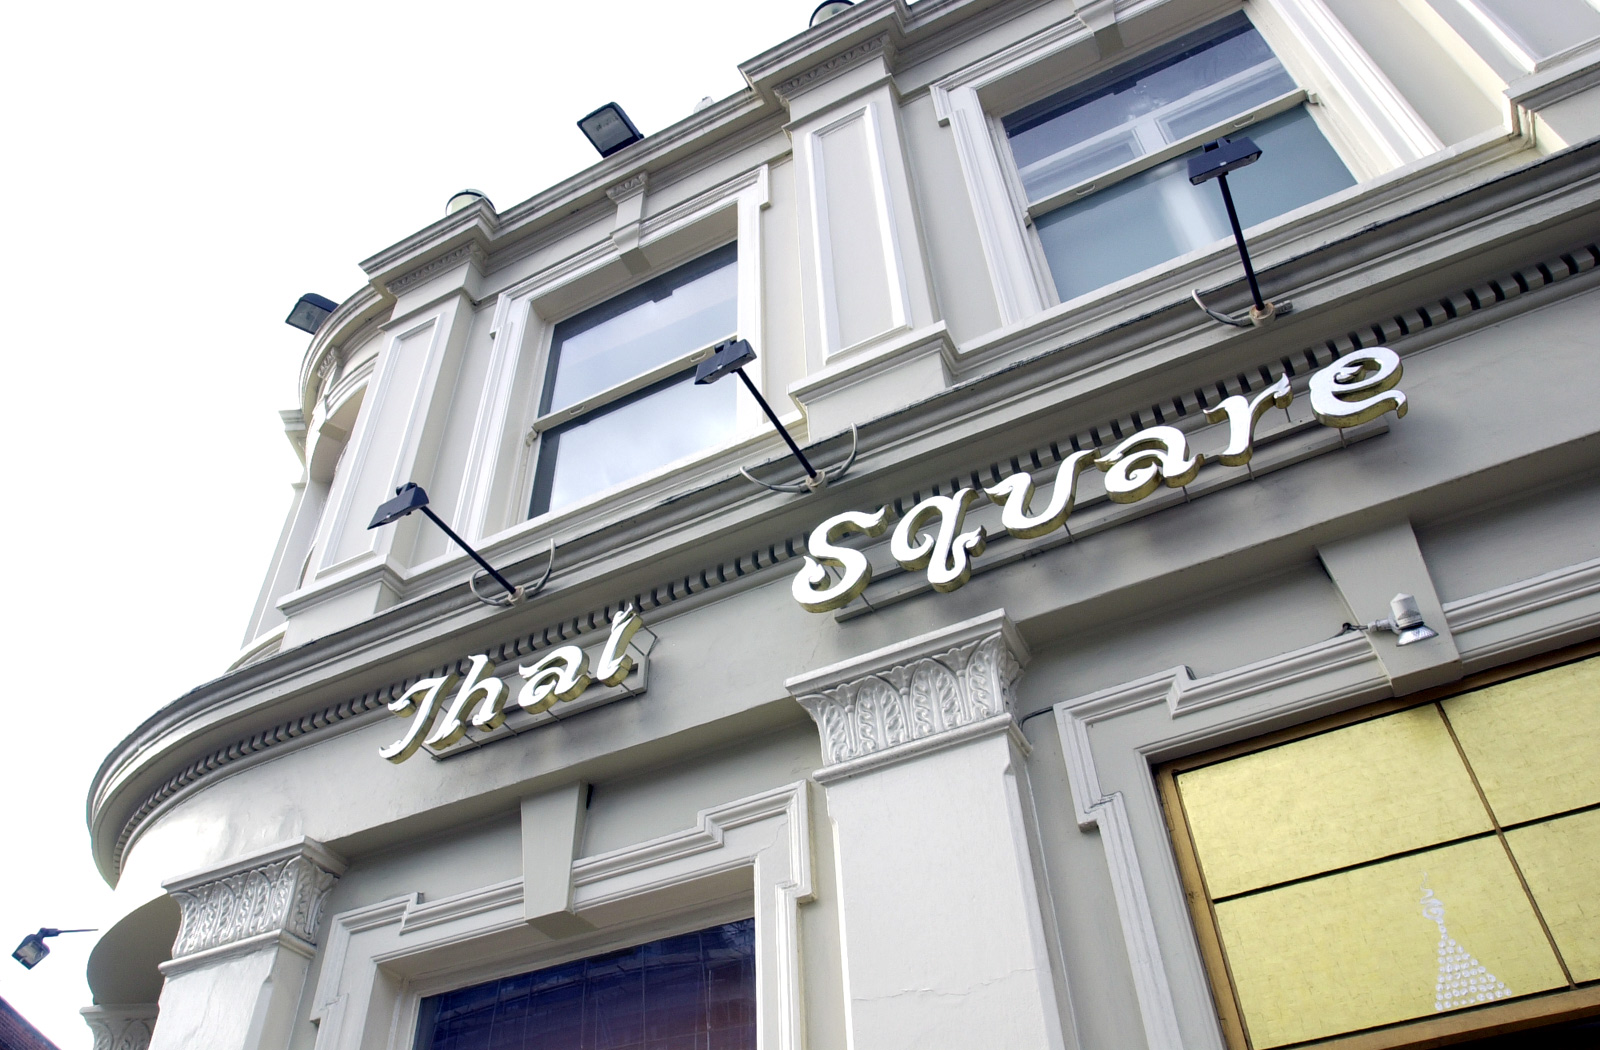 Thai Square - South Kensington - London